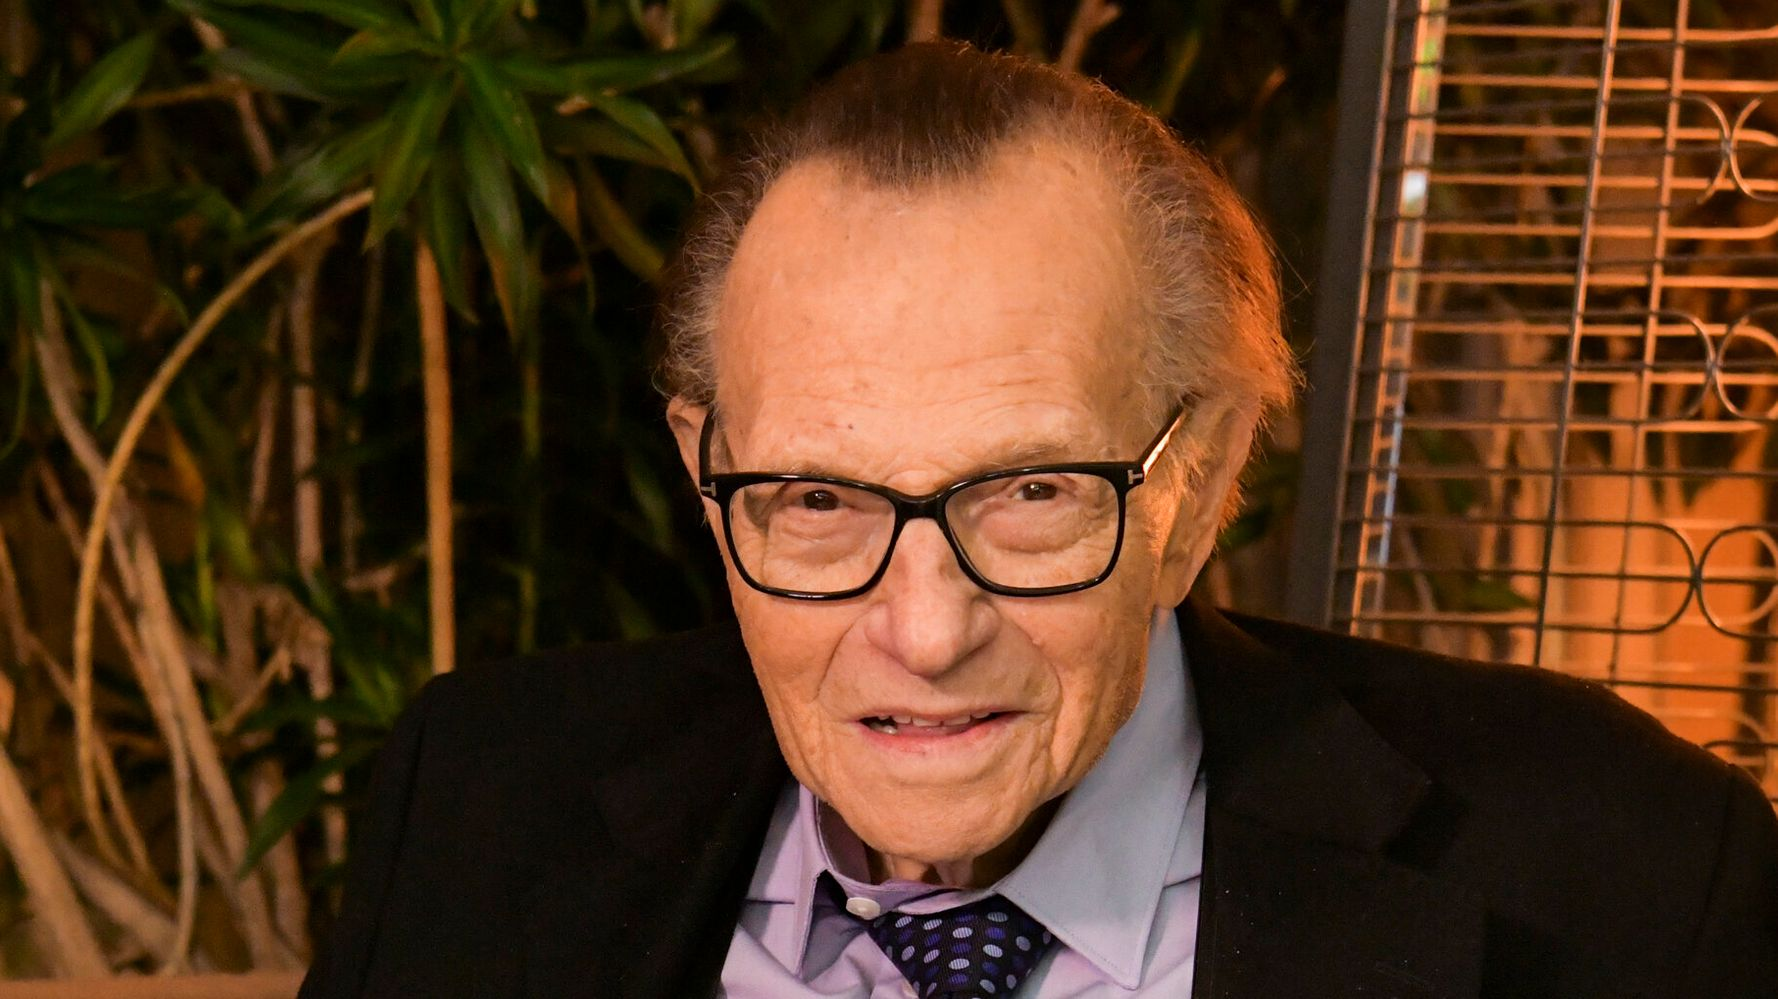 Larry King Fighting COVID-19 From Los Angeles Hospital Bed: Reports